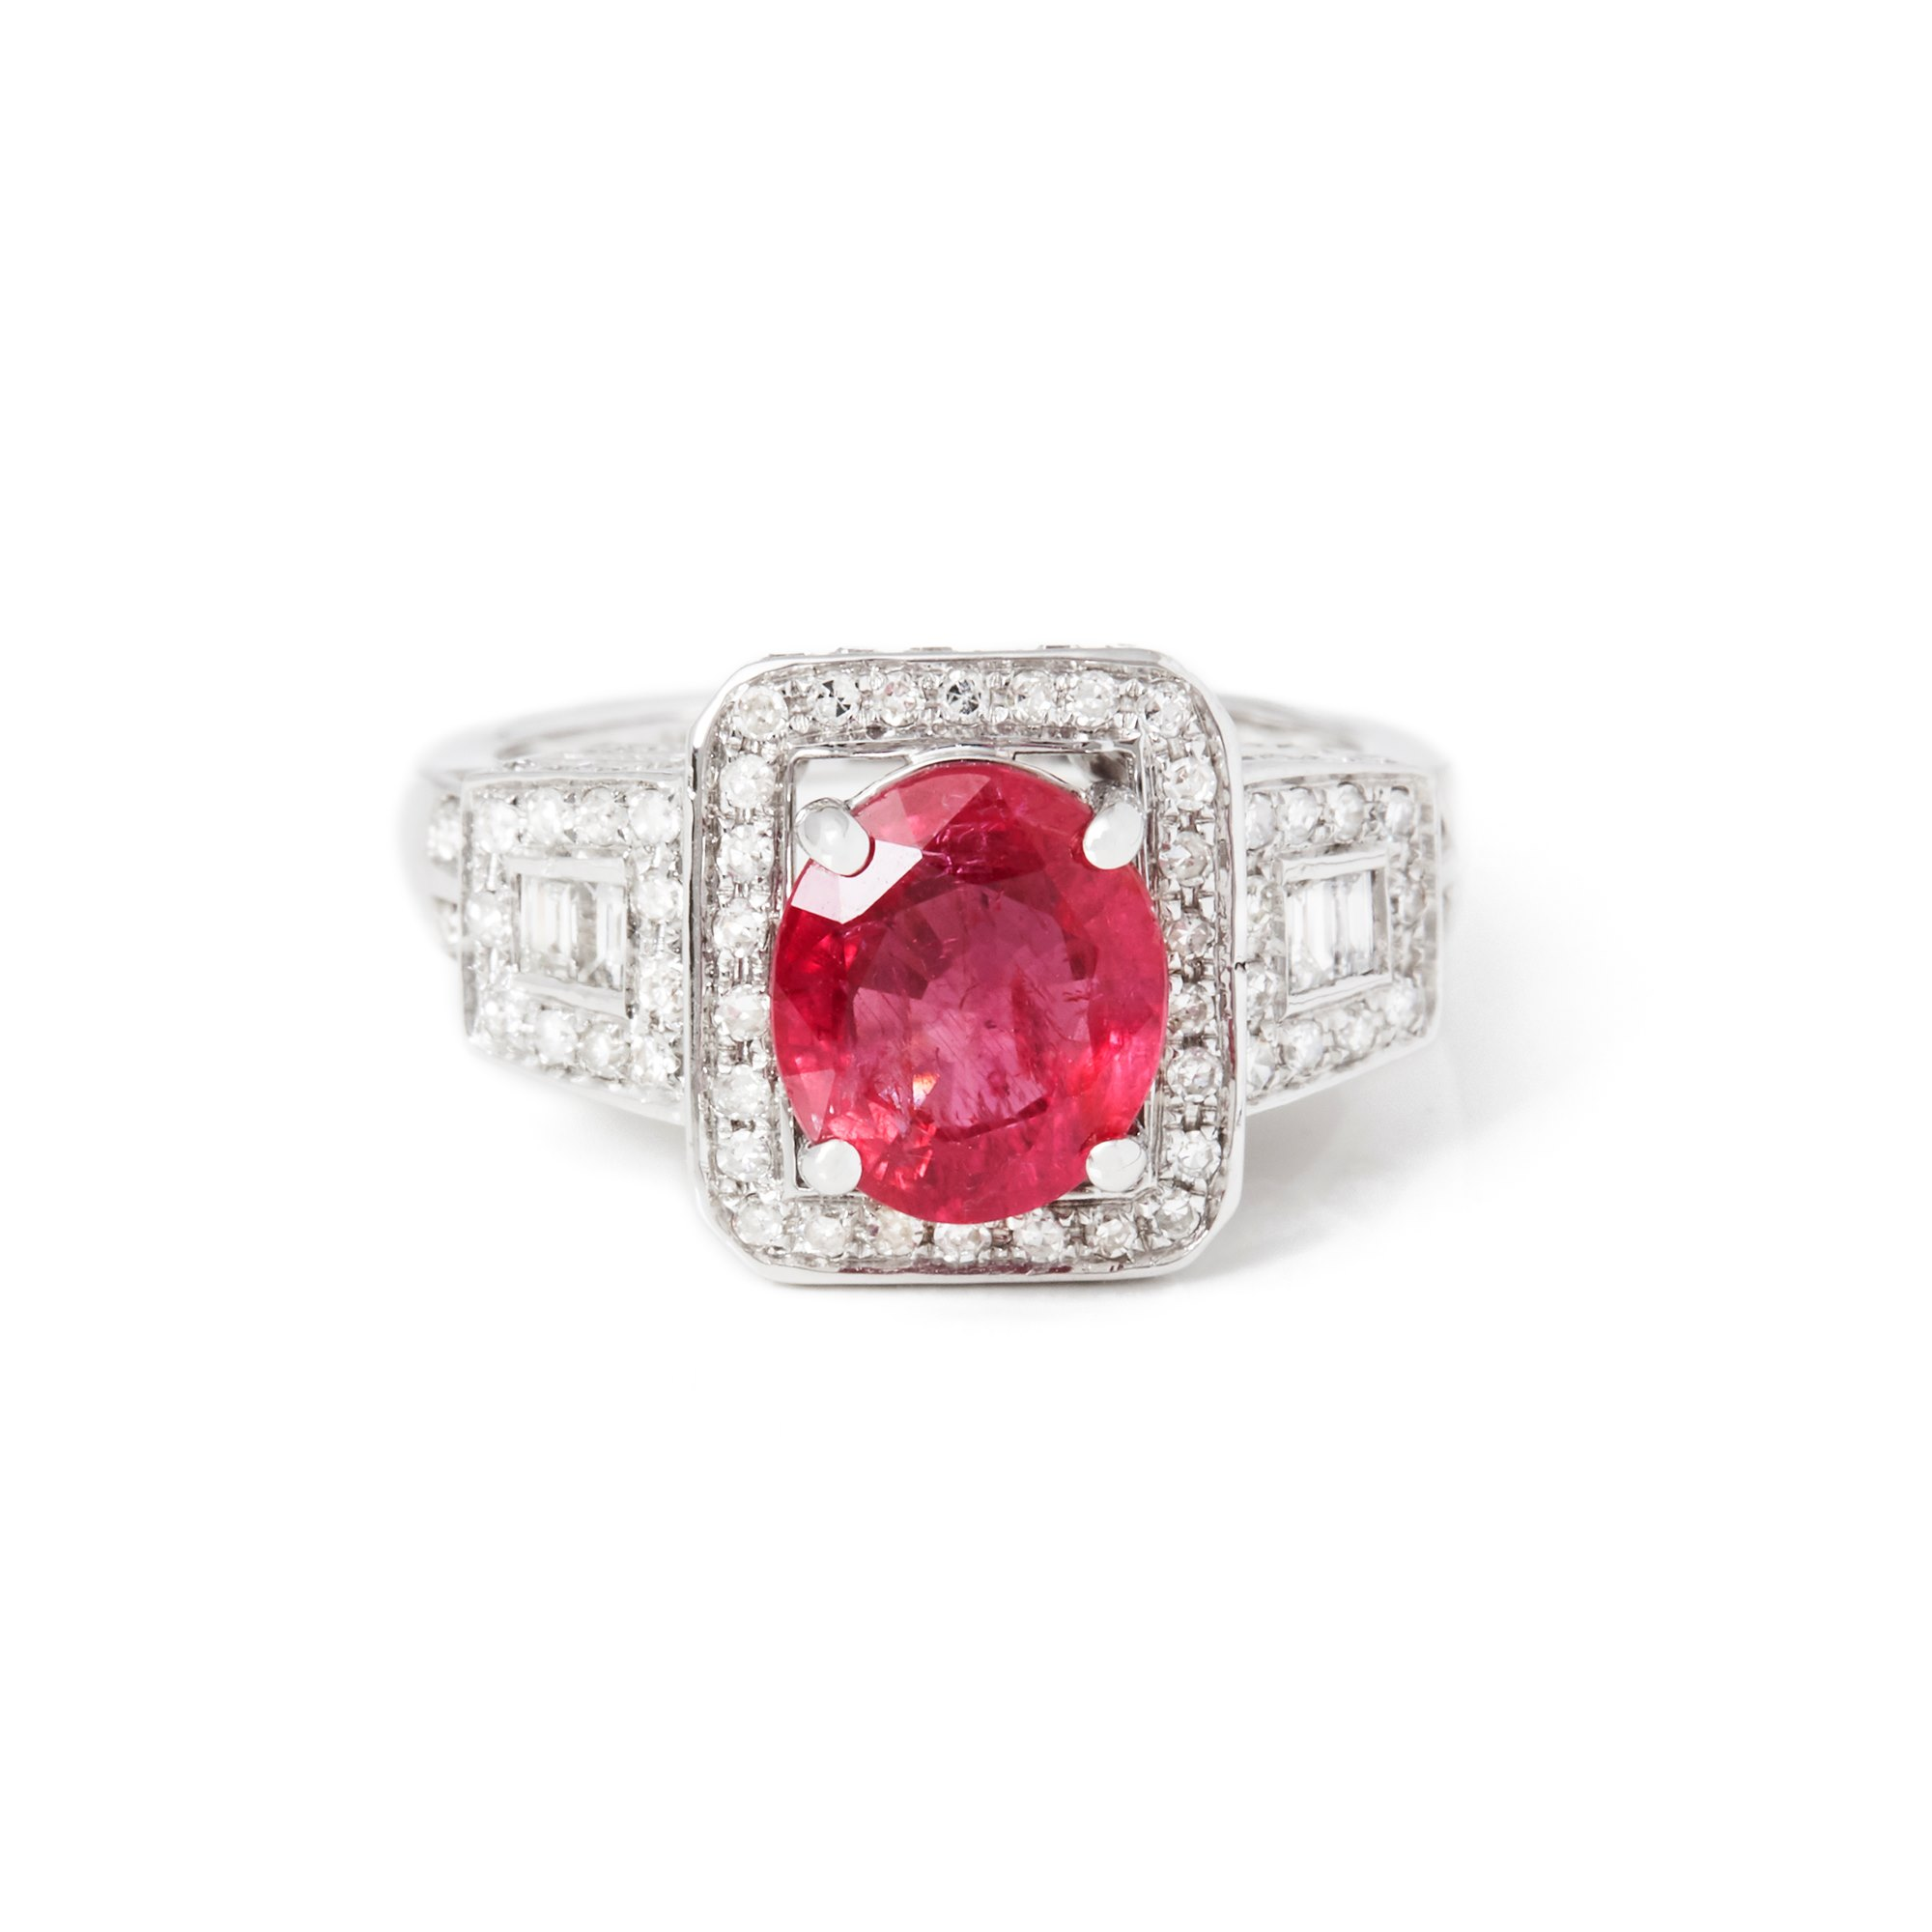 David Jerome Certified 2.37ct Unheated Untreated Oval Cut Ruby and Diamond 18ct gold Ring